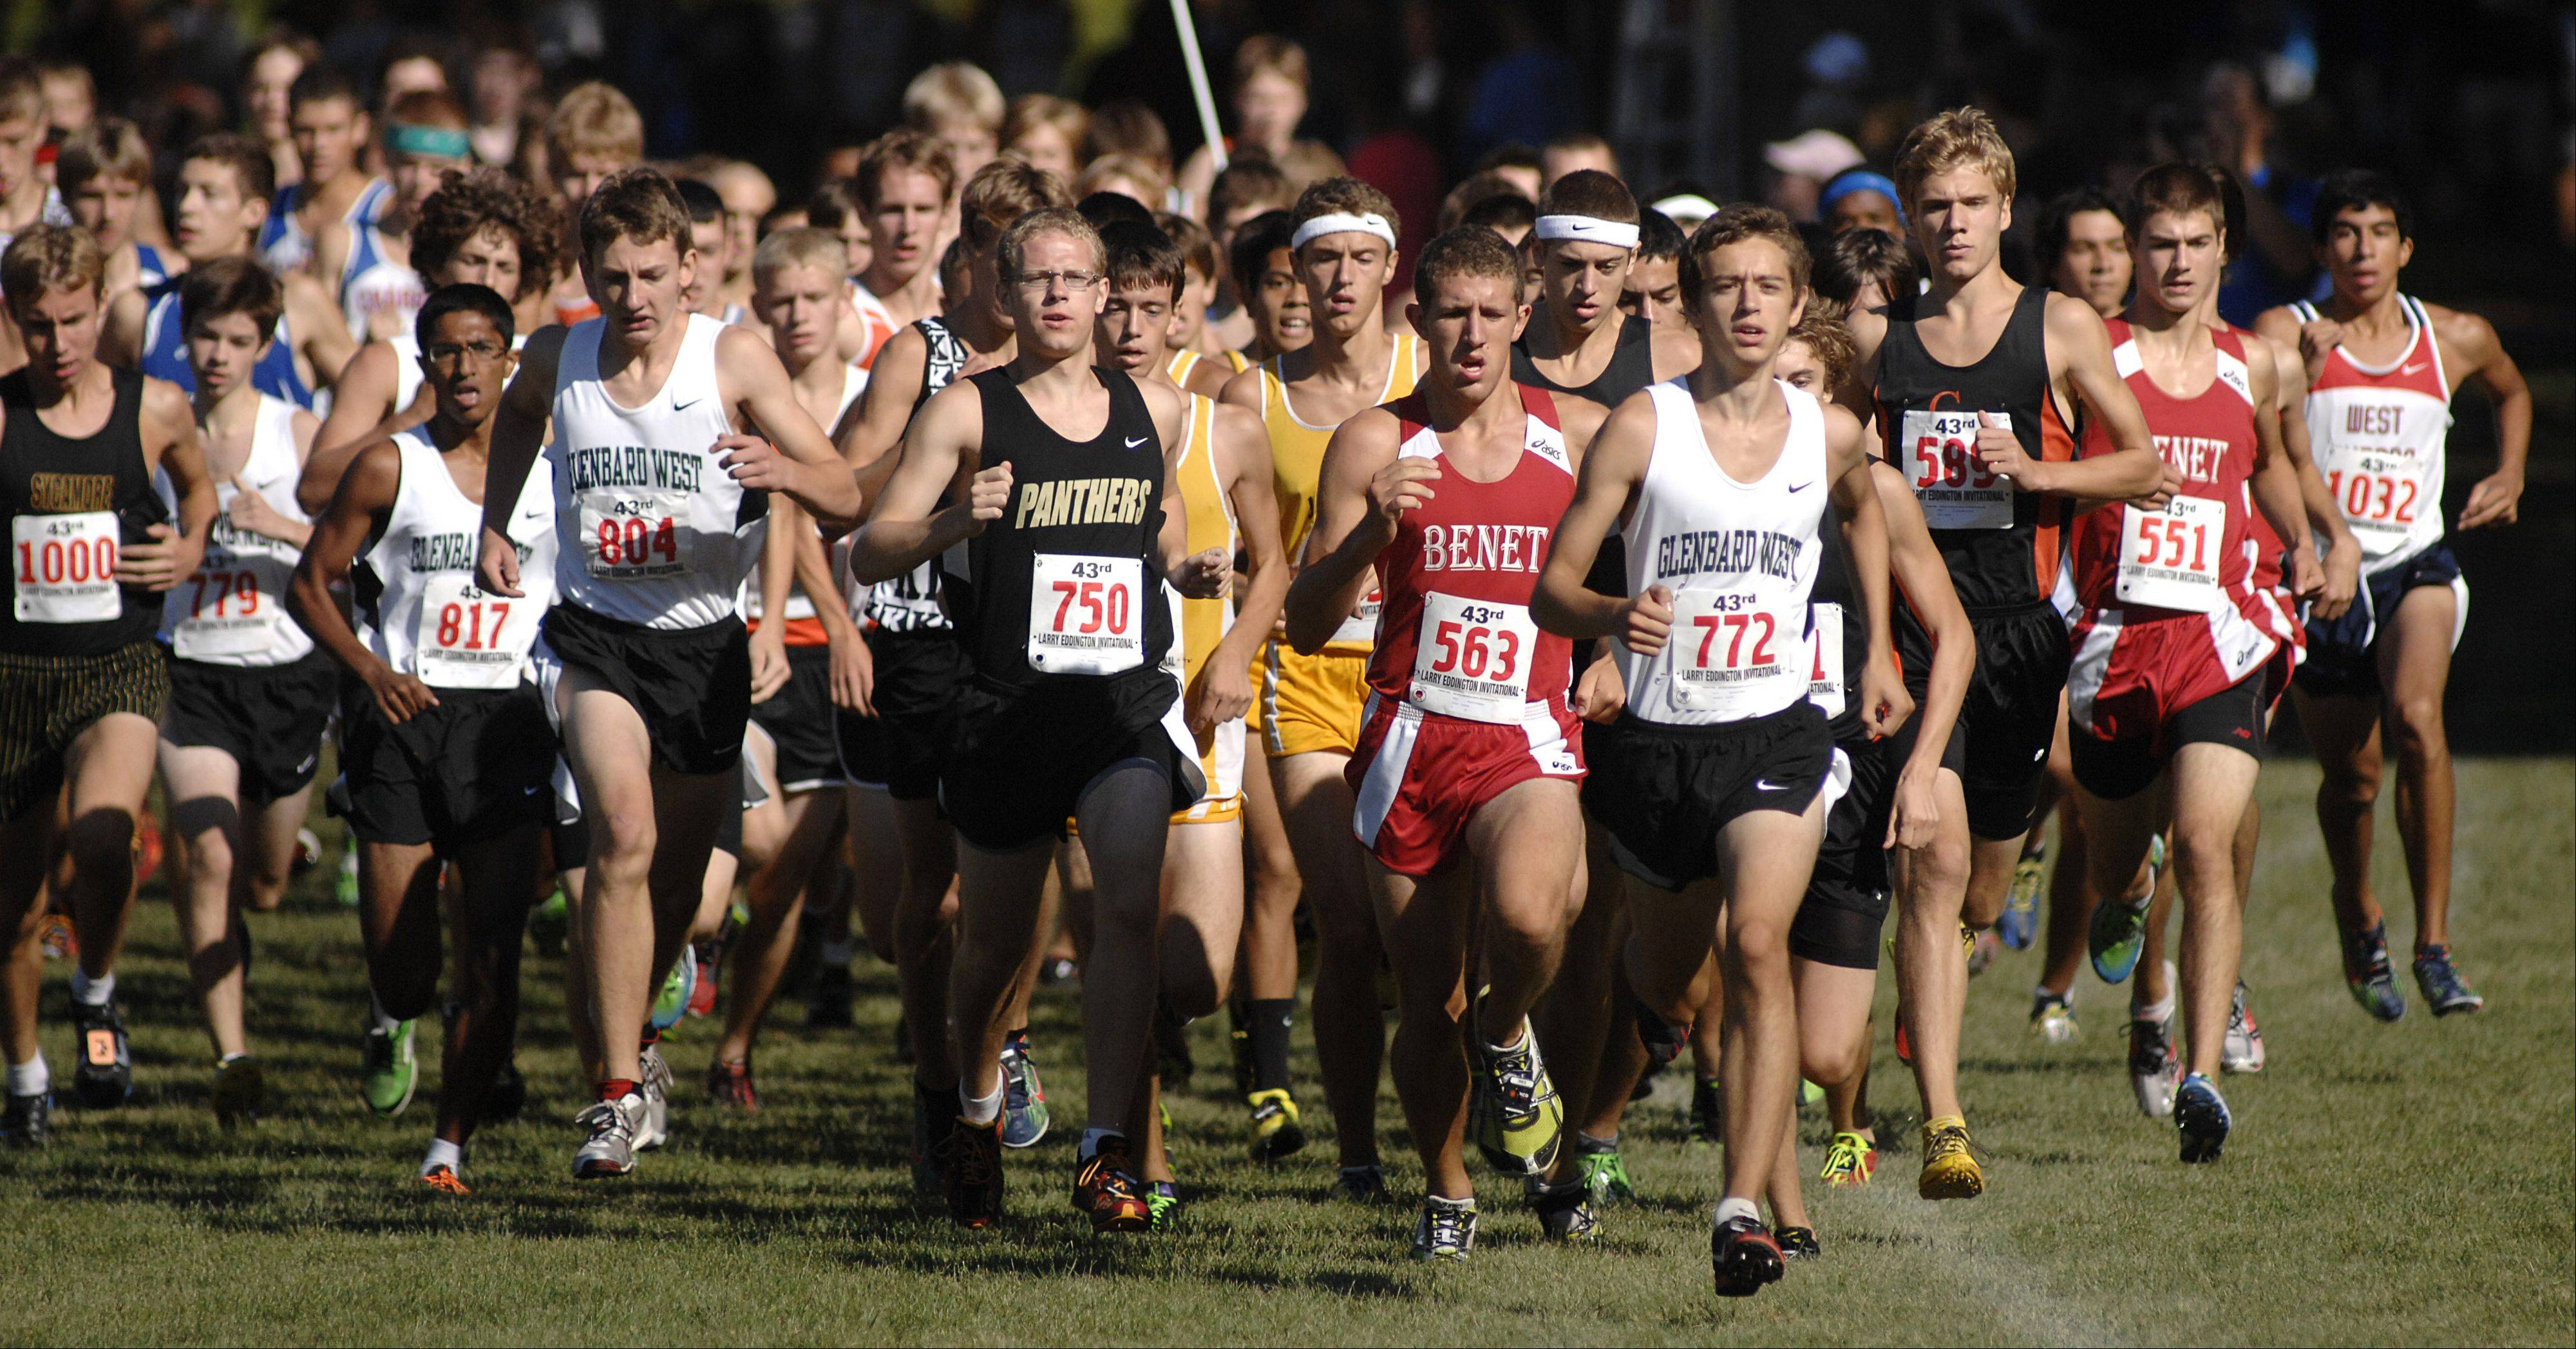 Start of the boys varsity race at the Kaneland Eddington Invitational in Elburn on Saturday, September 15. Benet's Anton Vershay (563) and Glenbard West's Brandon Bonifer (772) in front of pack.